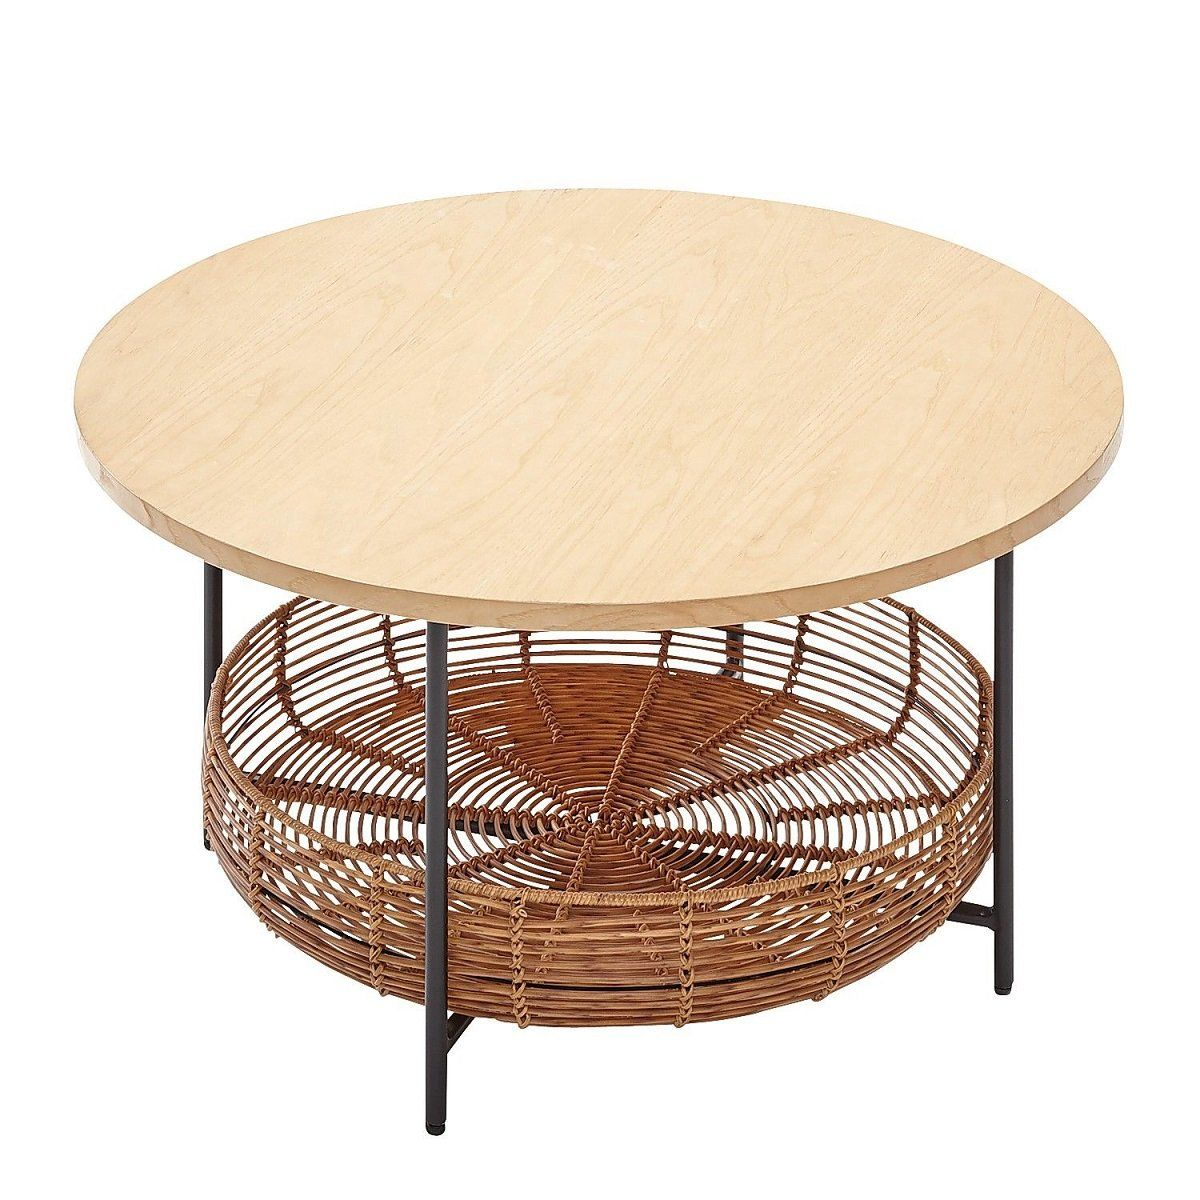 Mesa De Acento Varley Pier 1 Imports Sears Coffee Table With Baskets Round Coffee Table Coffee Table Wood [ 1200 x 1200 Pixel ]